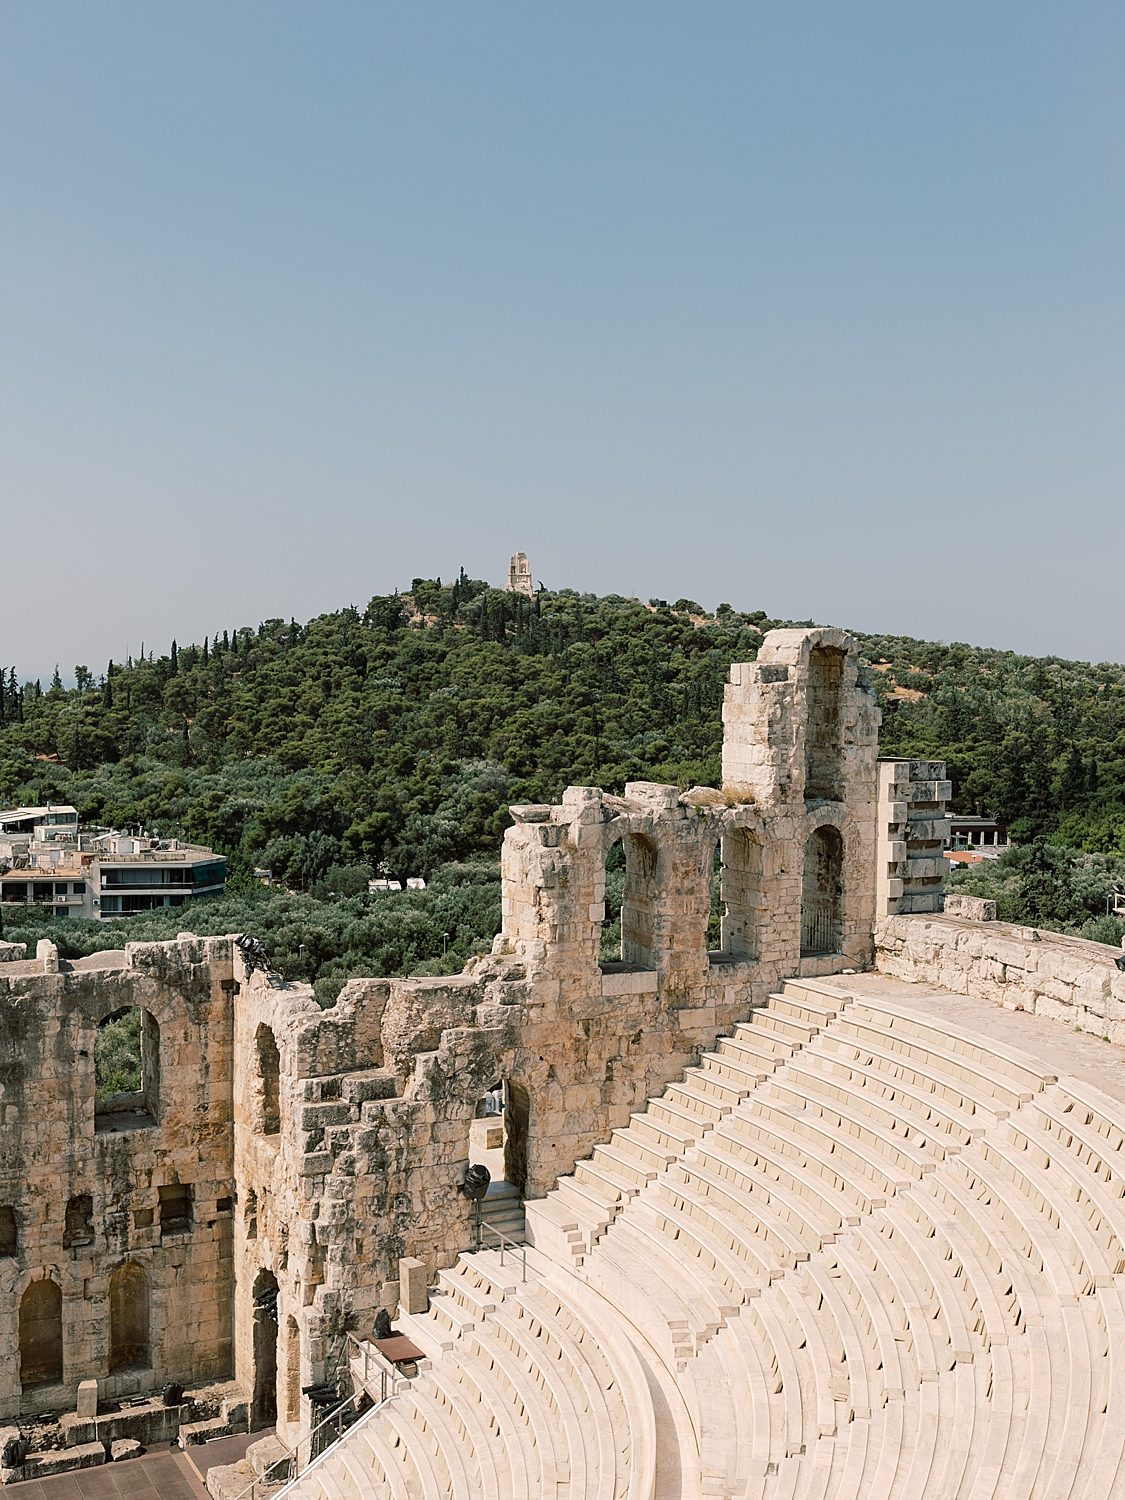 - You won't want to miss The Acropolis and The Acropolis Museum, which are the two most famous places in the entire city.